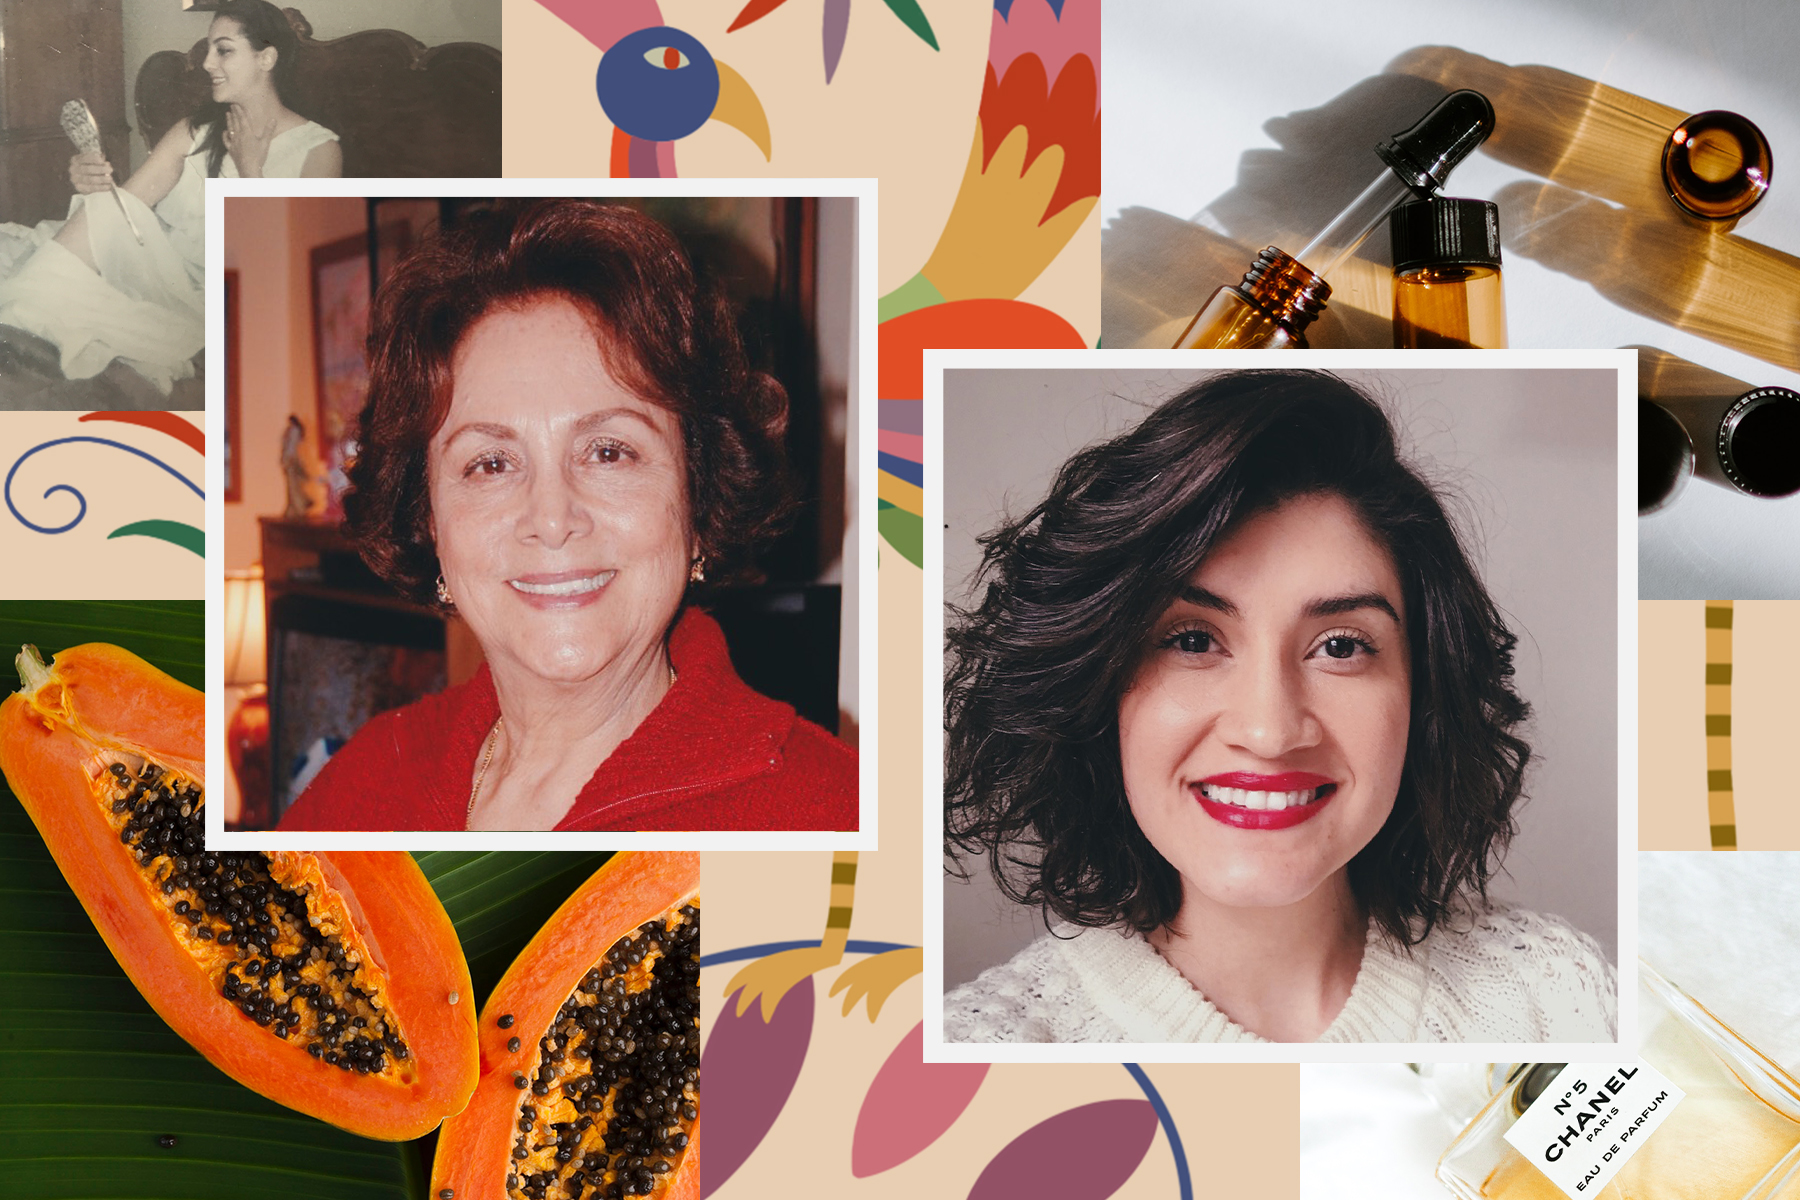 abuela beauty trends, abuela beauty tips